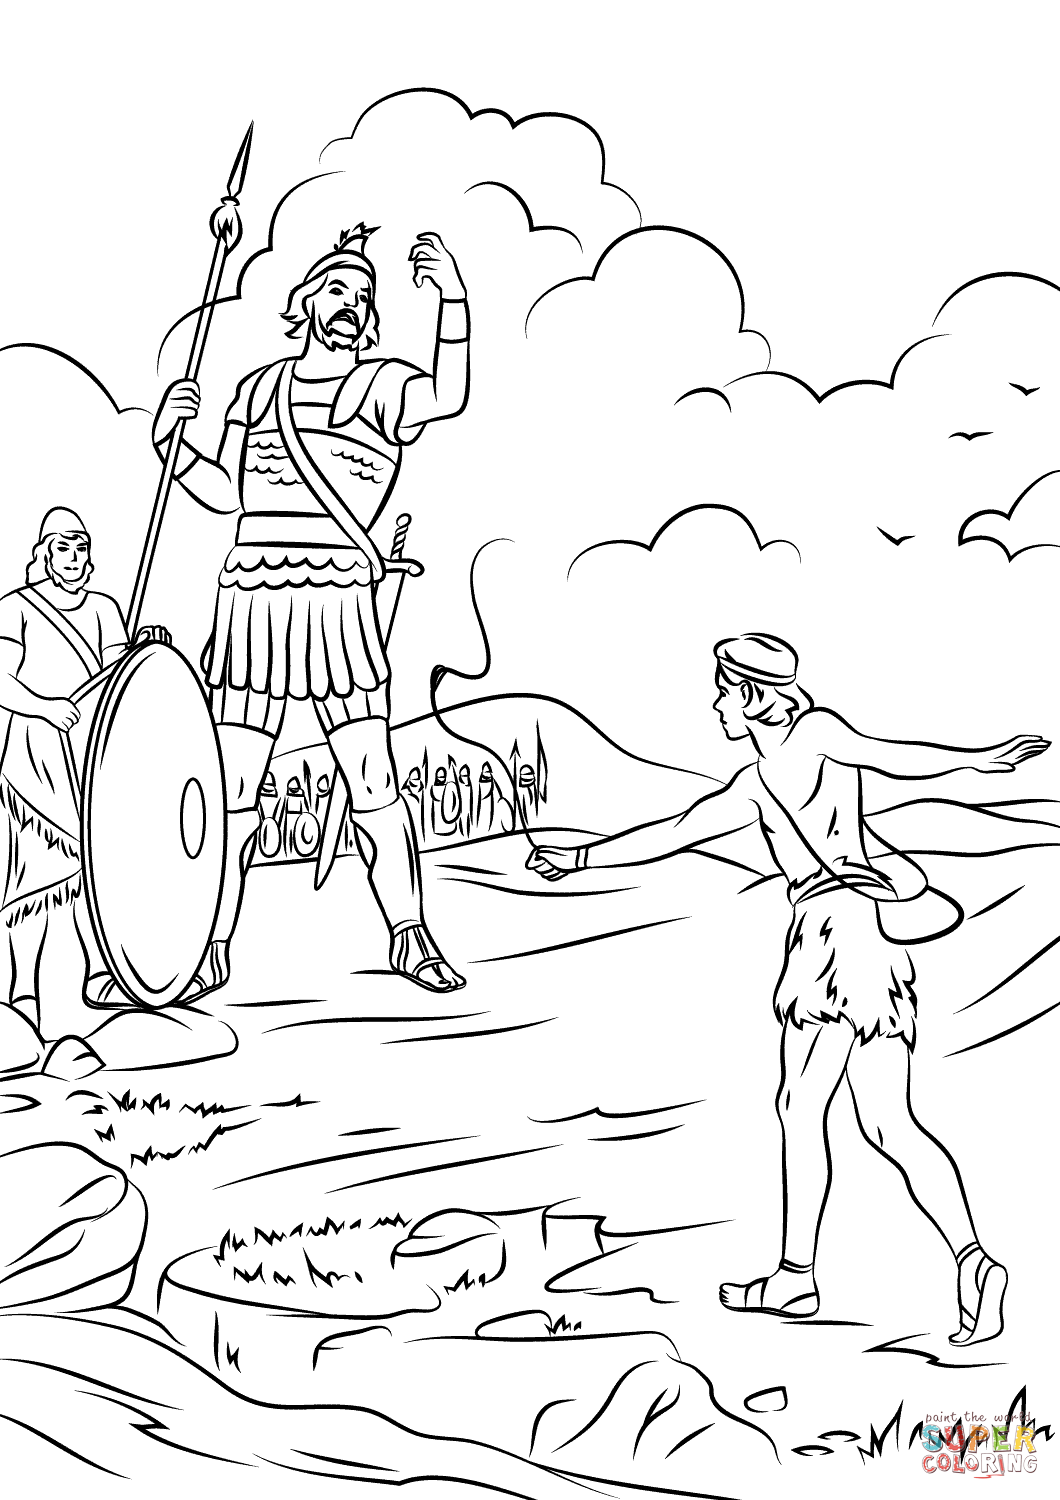 No David Coloring Pages Coloring Pages